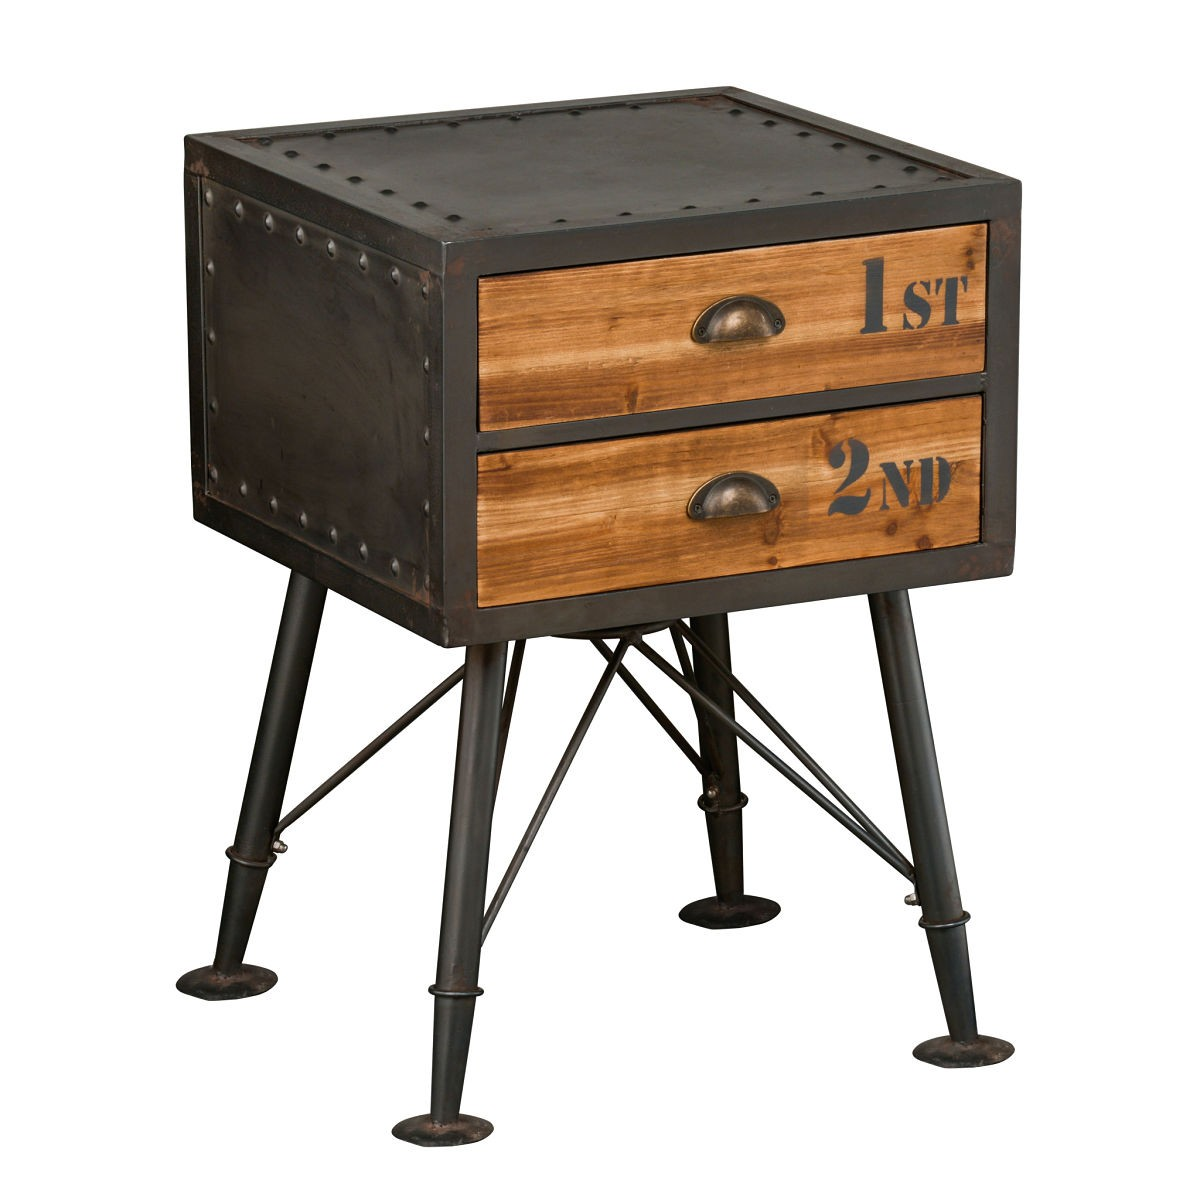 Industrial Look Bedroom Furniture From The Quirky Smithers Of Stamford